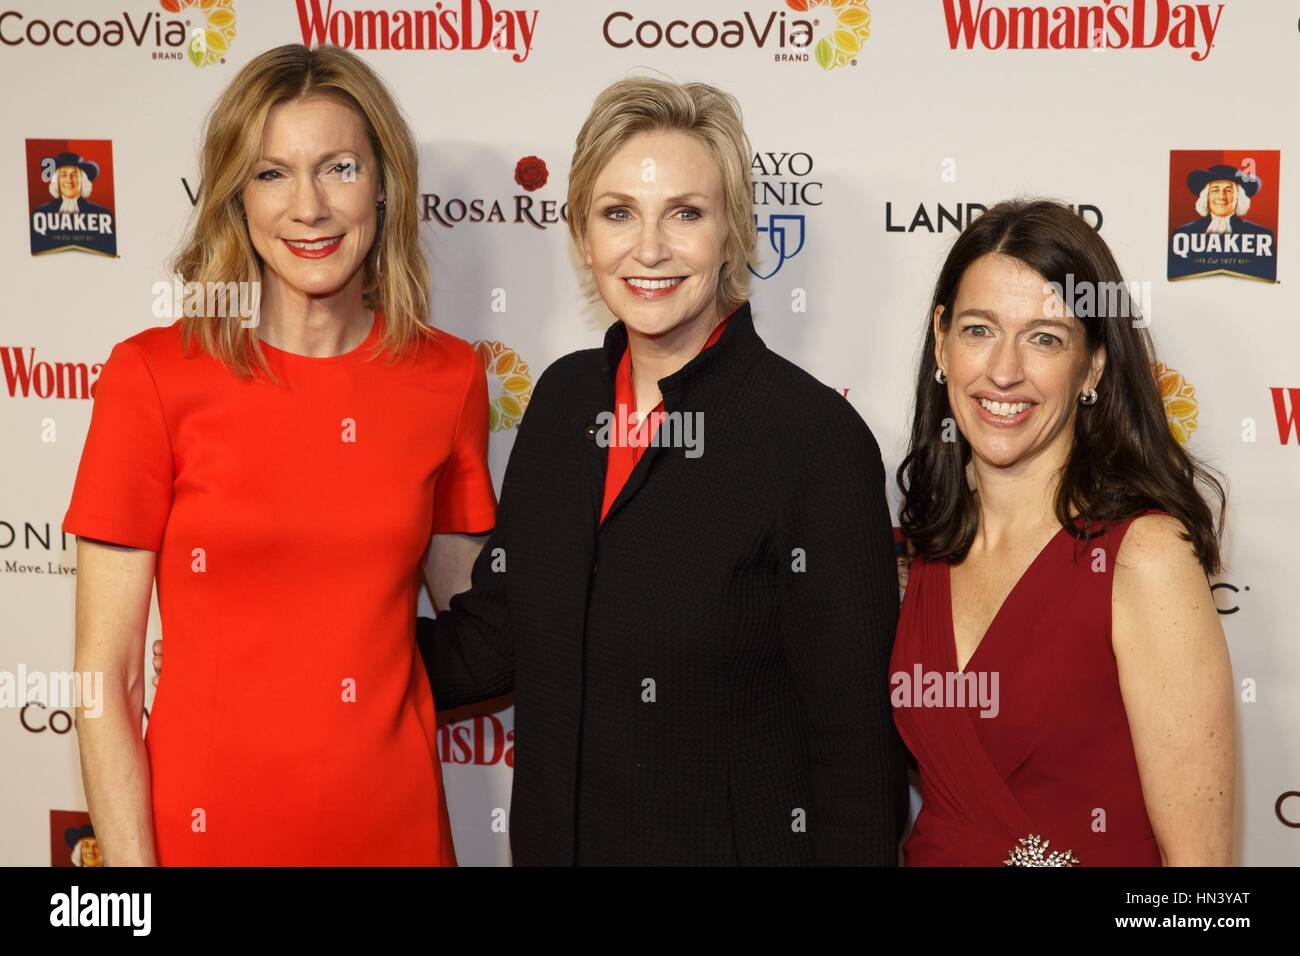 New York, NY, USA. 7th Feb, 2017. Susan Spencer, Jane Lynch, Kassie Means at arrivals for Woman's Day Celebrates - Stock Image